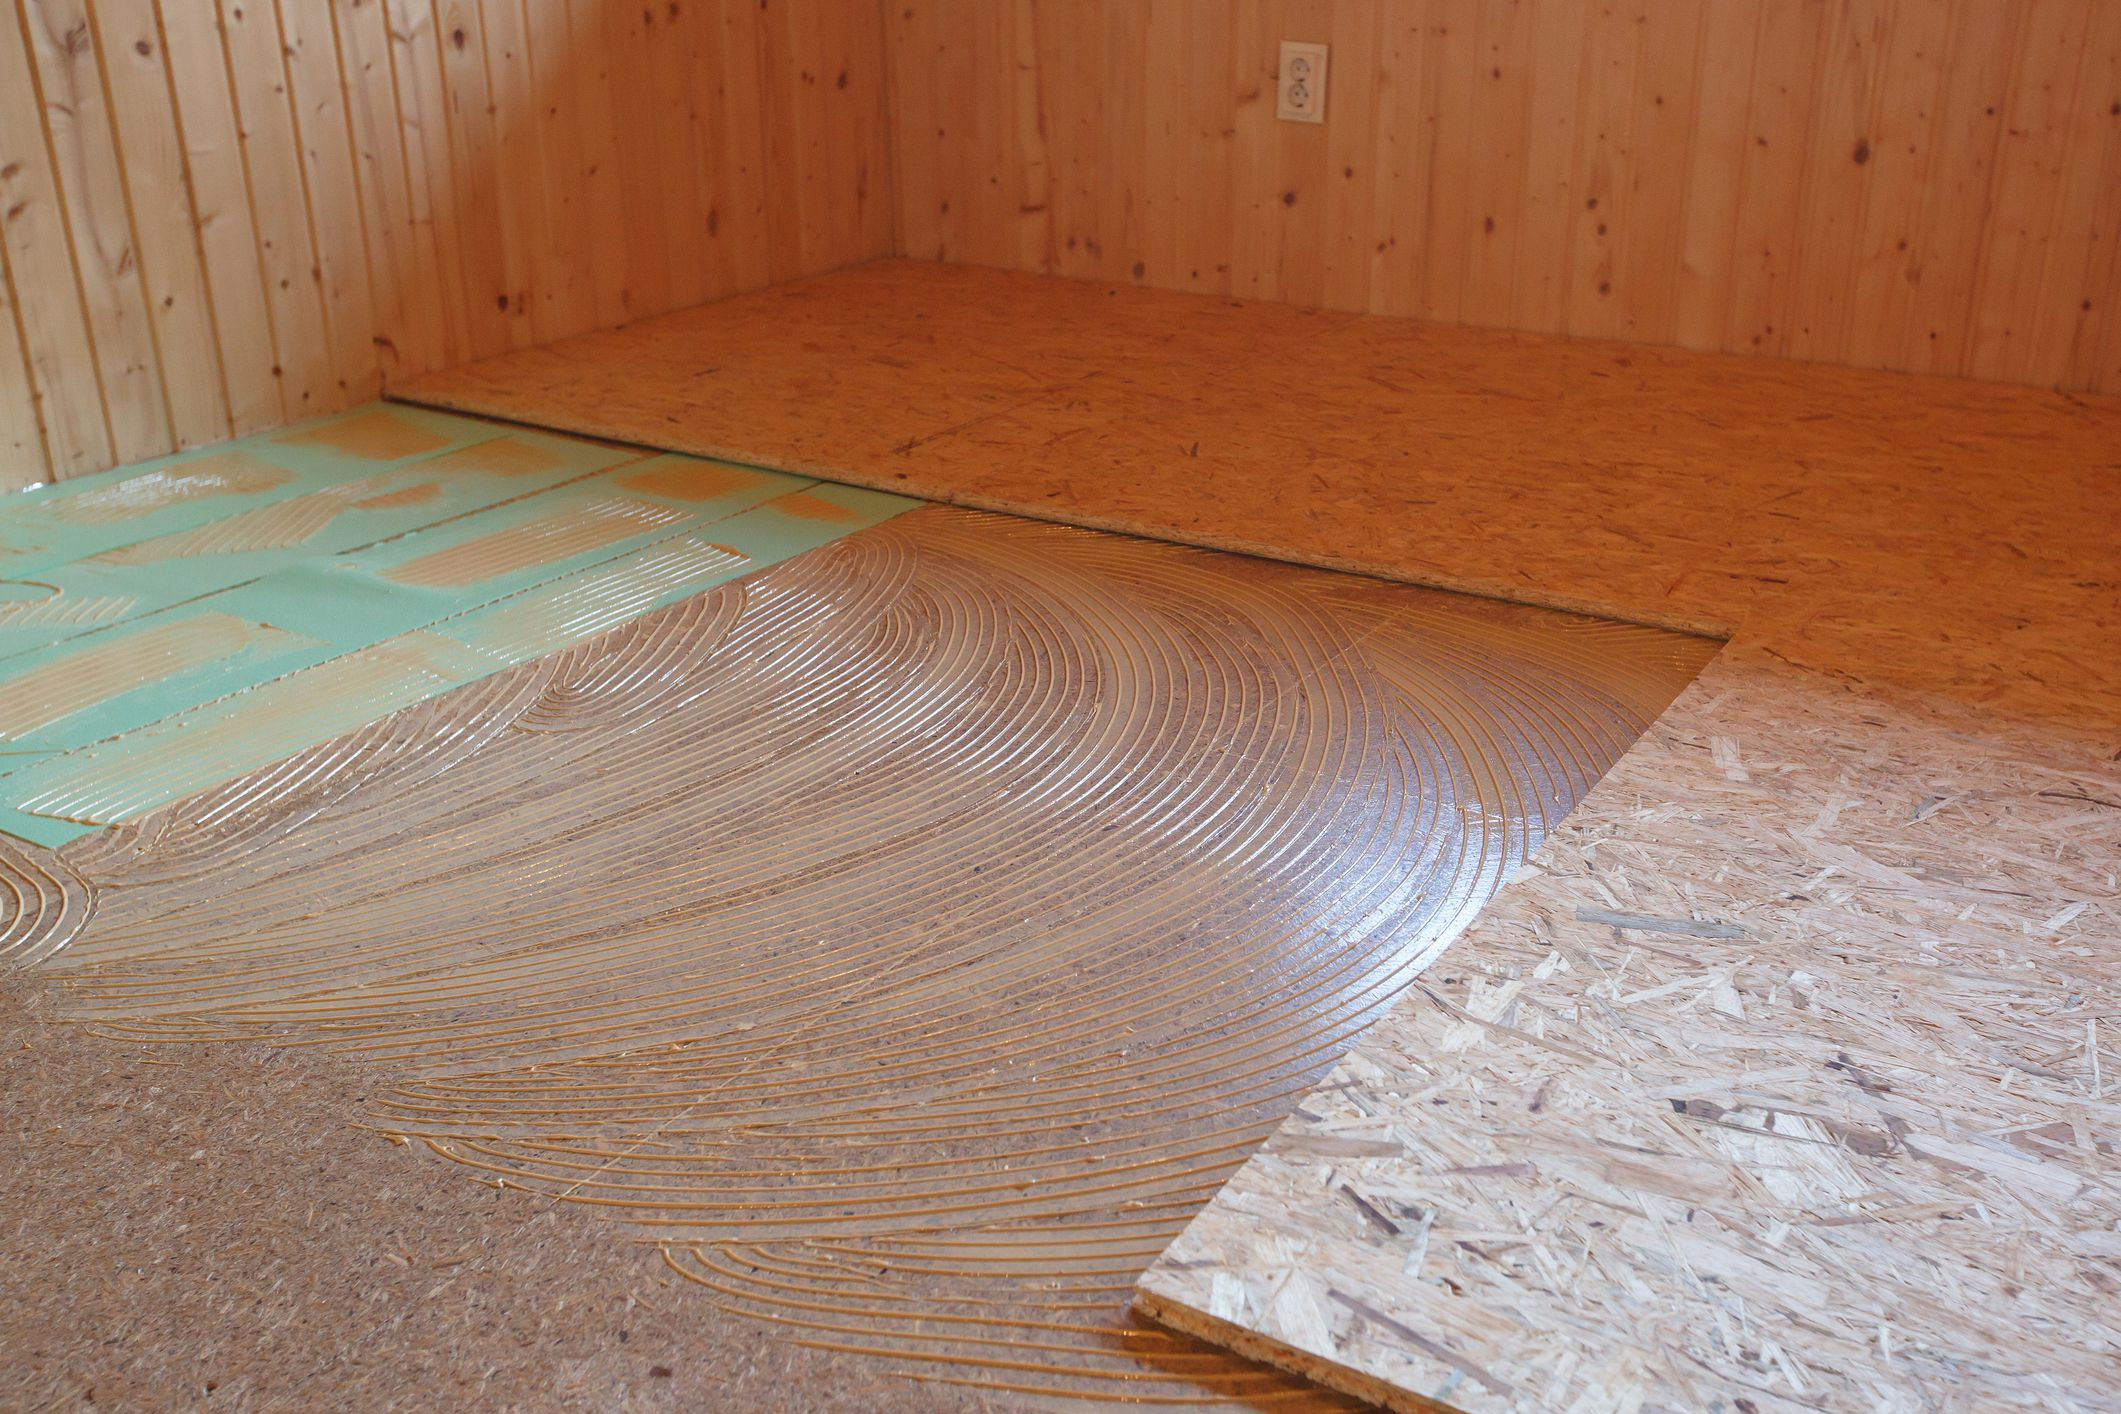 layout for hardwood floor install of types of subfloor materials in construction projects with regard to gettyimages 892047030 5af5f46fc064710036eebd22